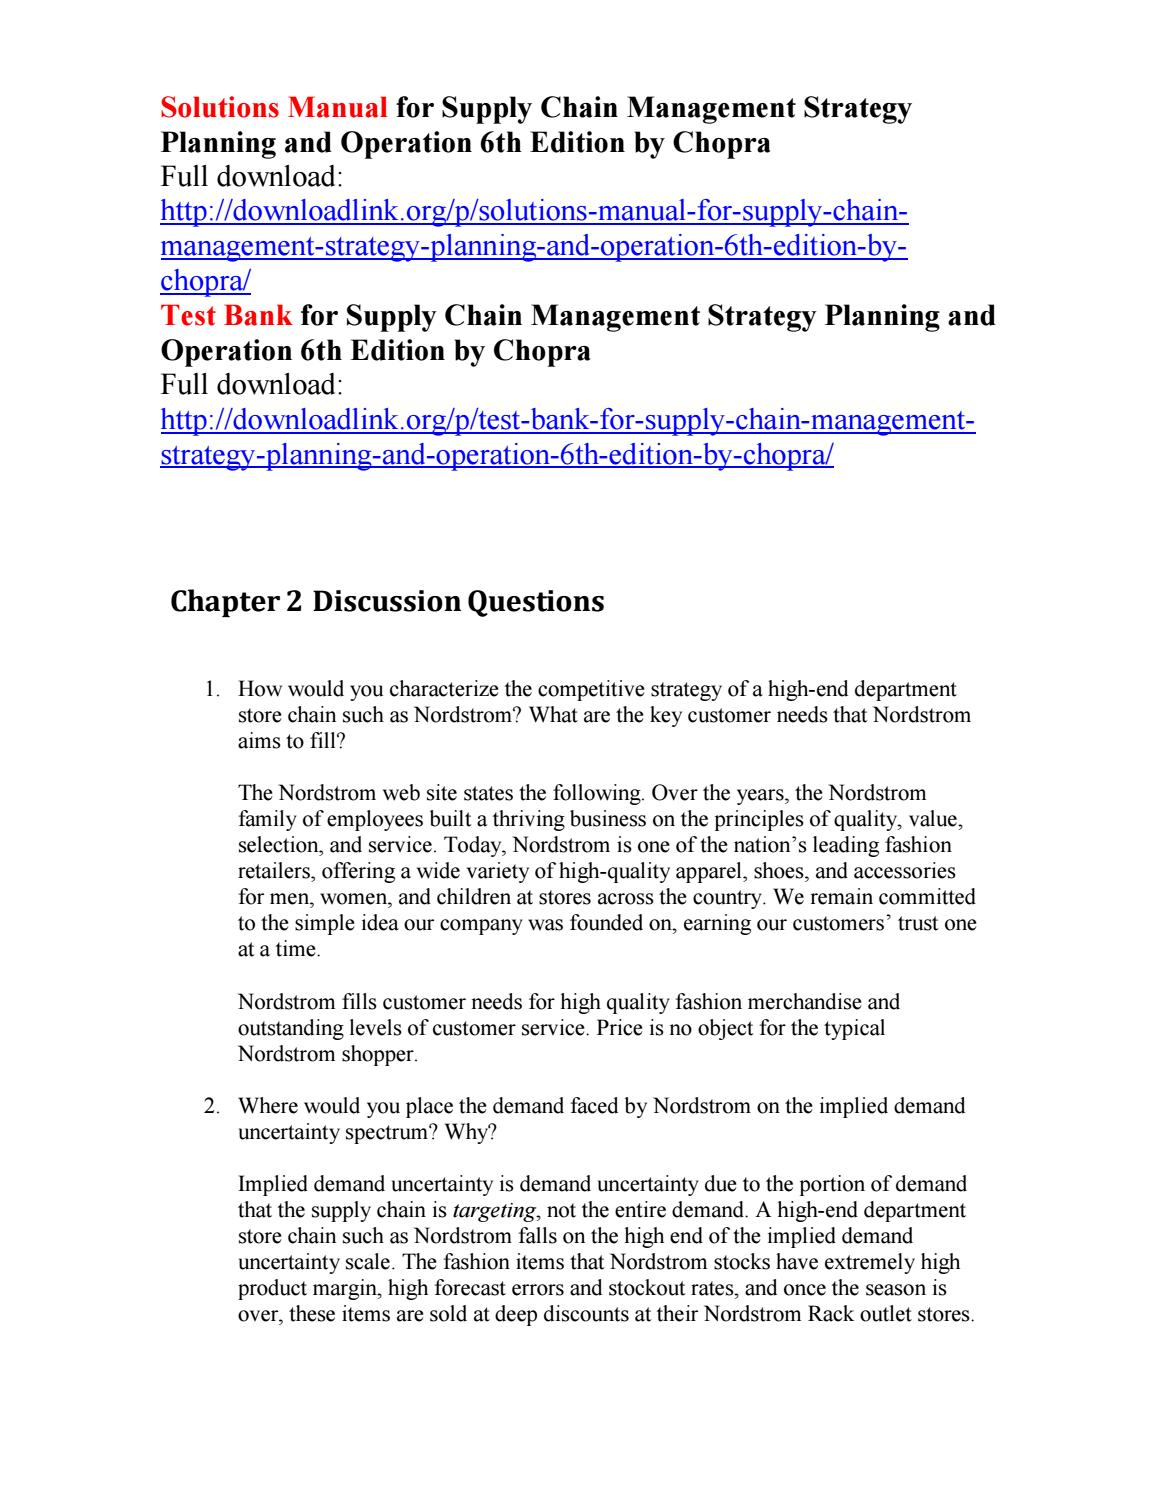 Solutions manual for supply chain management strategy planning and  operation 6th edition by chopra by Feldmann111 - issuu